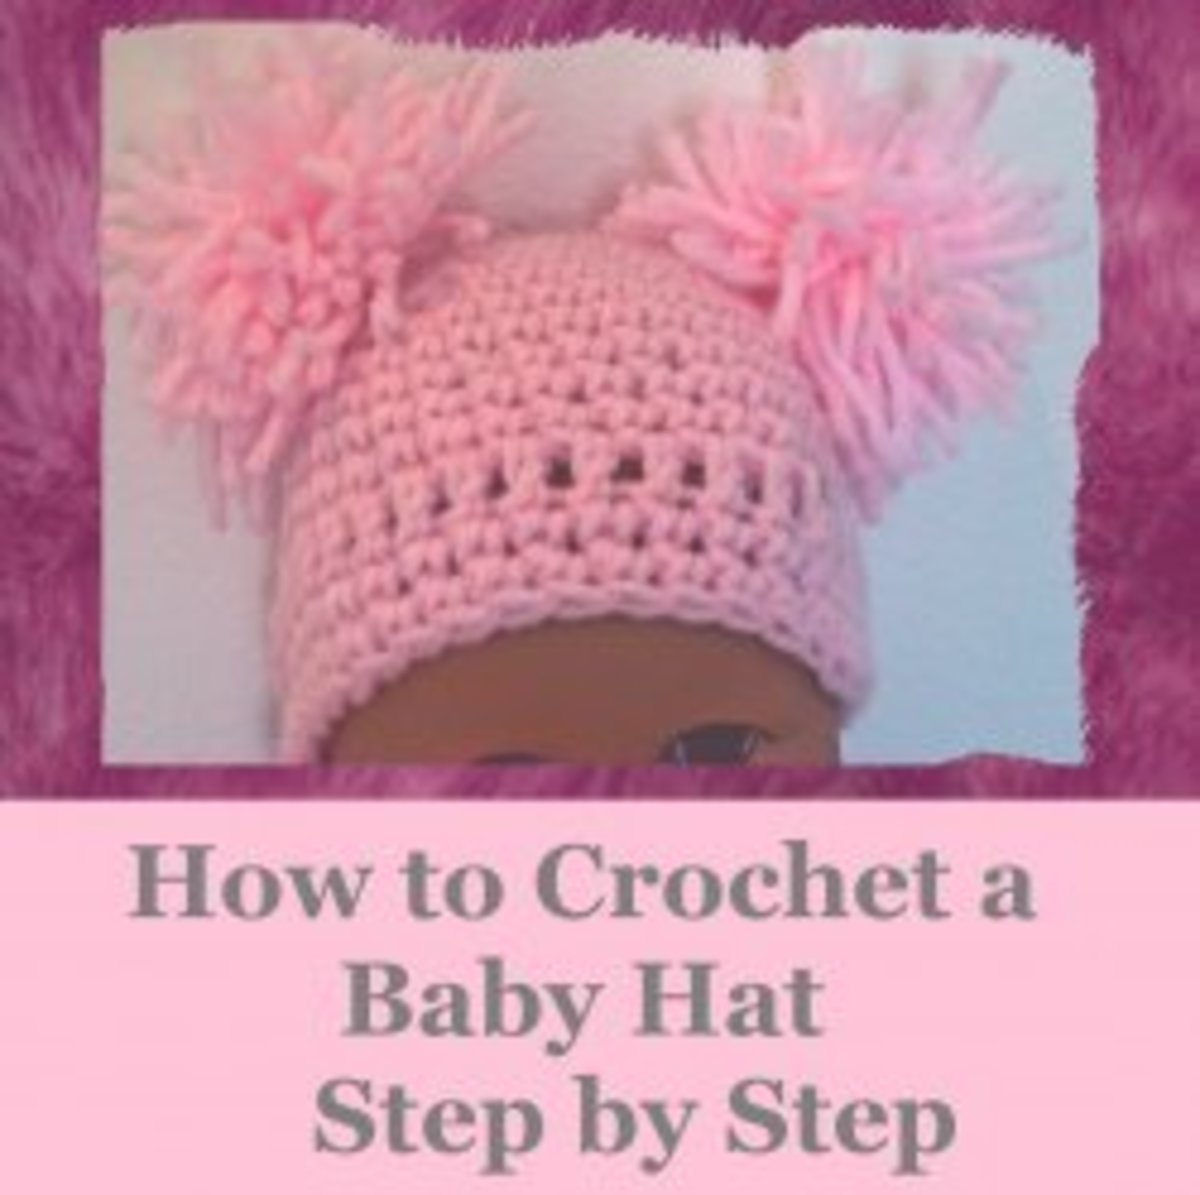 How to Crochet a Baby Hat Ideal for Beginners (With Step-by-Step Pictures)